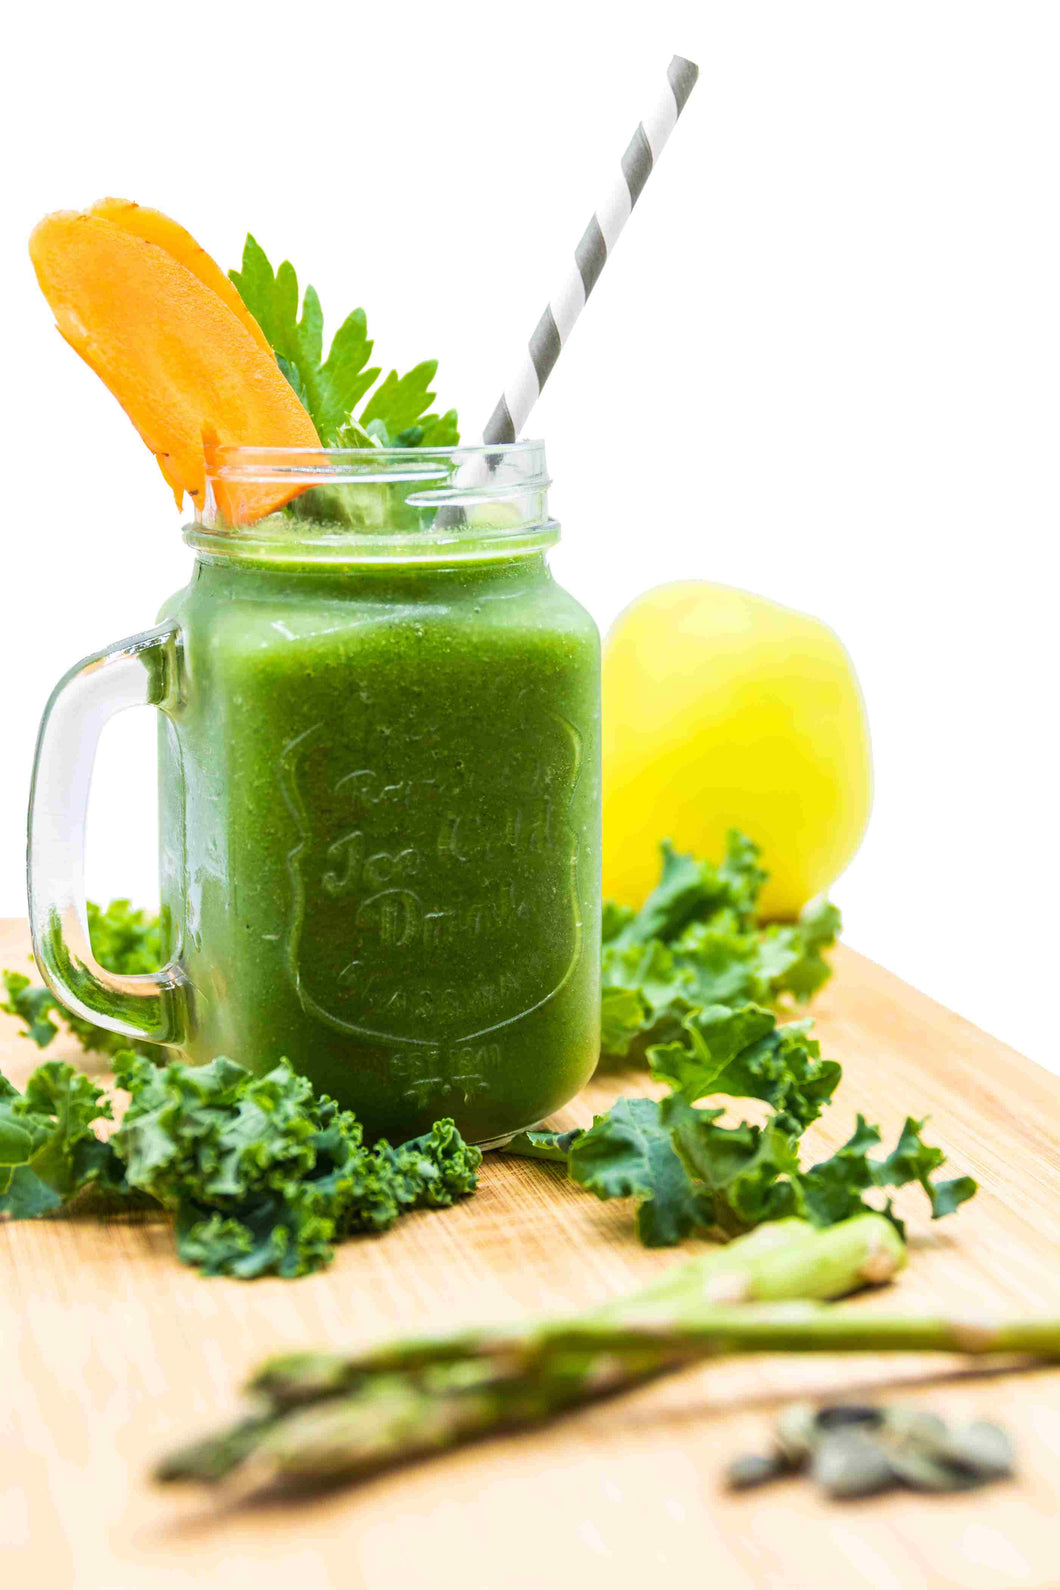 With this super green vegetable-packed smoothie, you'll enjoy intense, original flavours with plenty of fibre and nutrients.  Your digestion system will love you all day.  Nourishing greens will help with weight loss while carrots improve the complexion of your skin, and pumpkin seeds will provide extra protein.